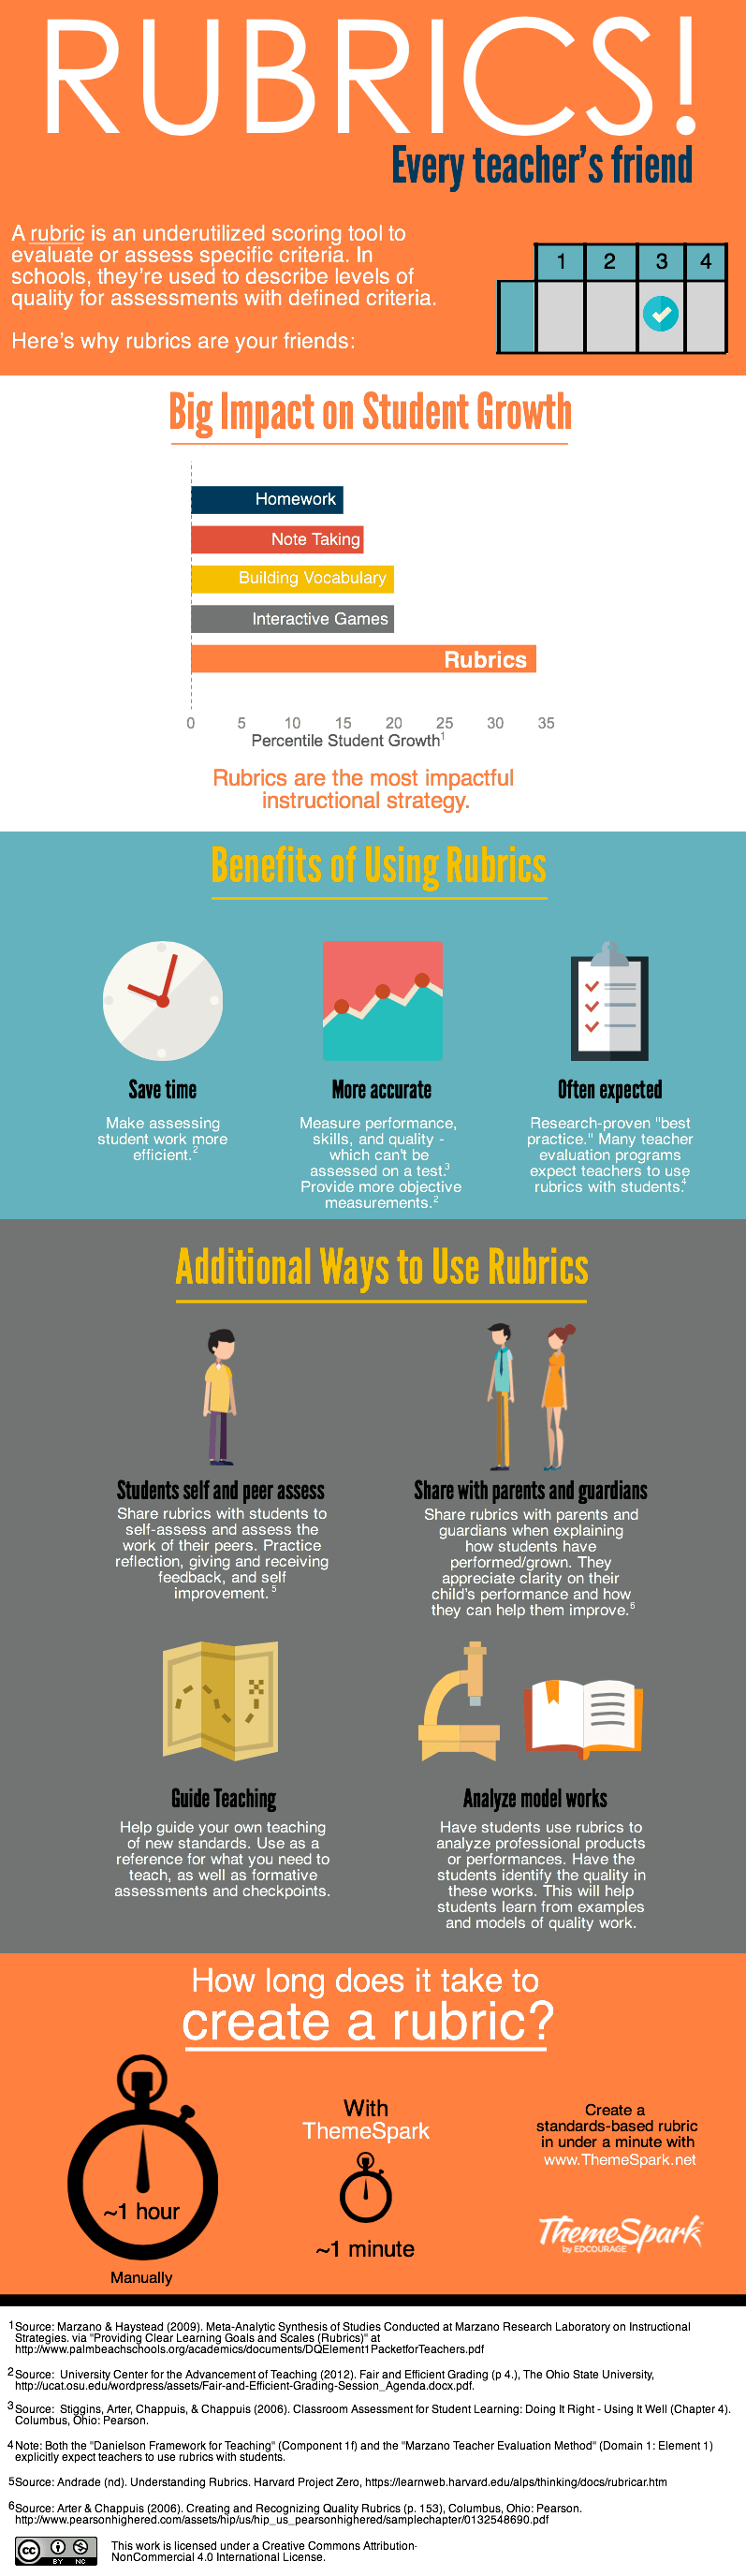 Rubrics: Every Teacher's Friend Infographic